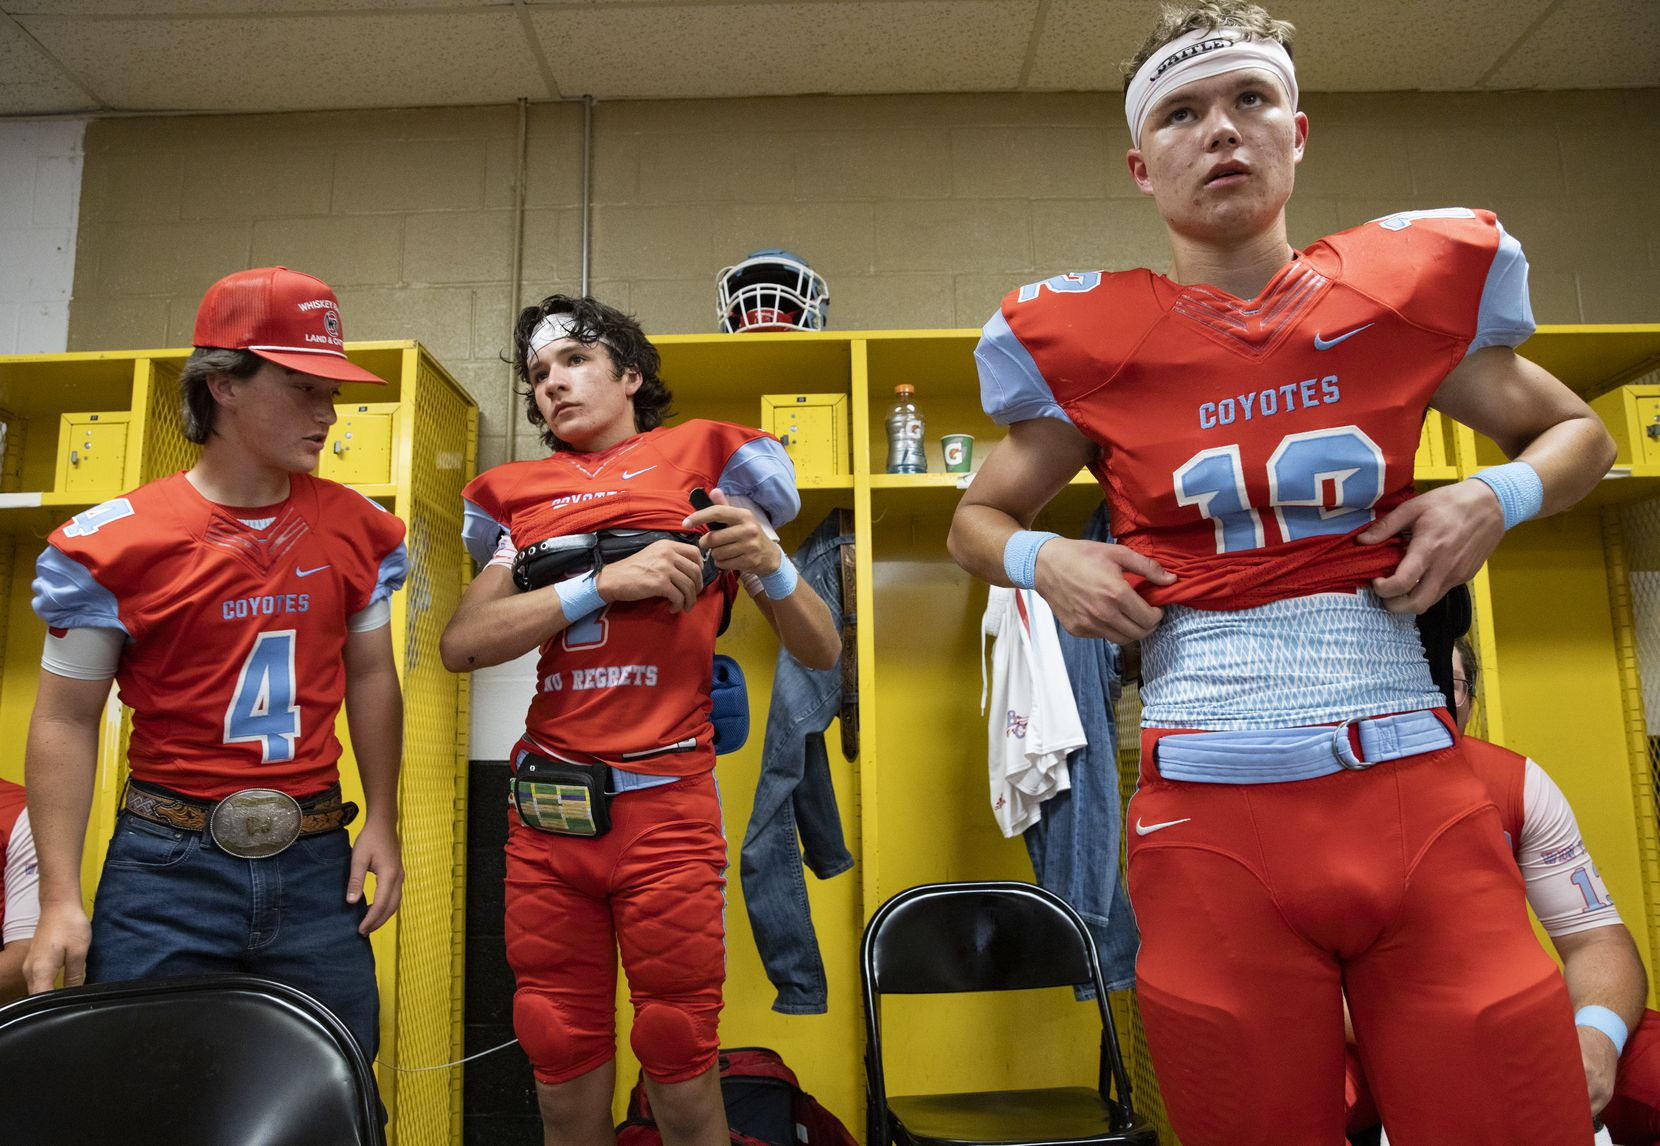 Borden County football players listen to coach Trey Richey in the locker room as they get ready to play against Calvert at Longhorn Stadium on Aug. 27, 2020 in Gordon.